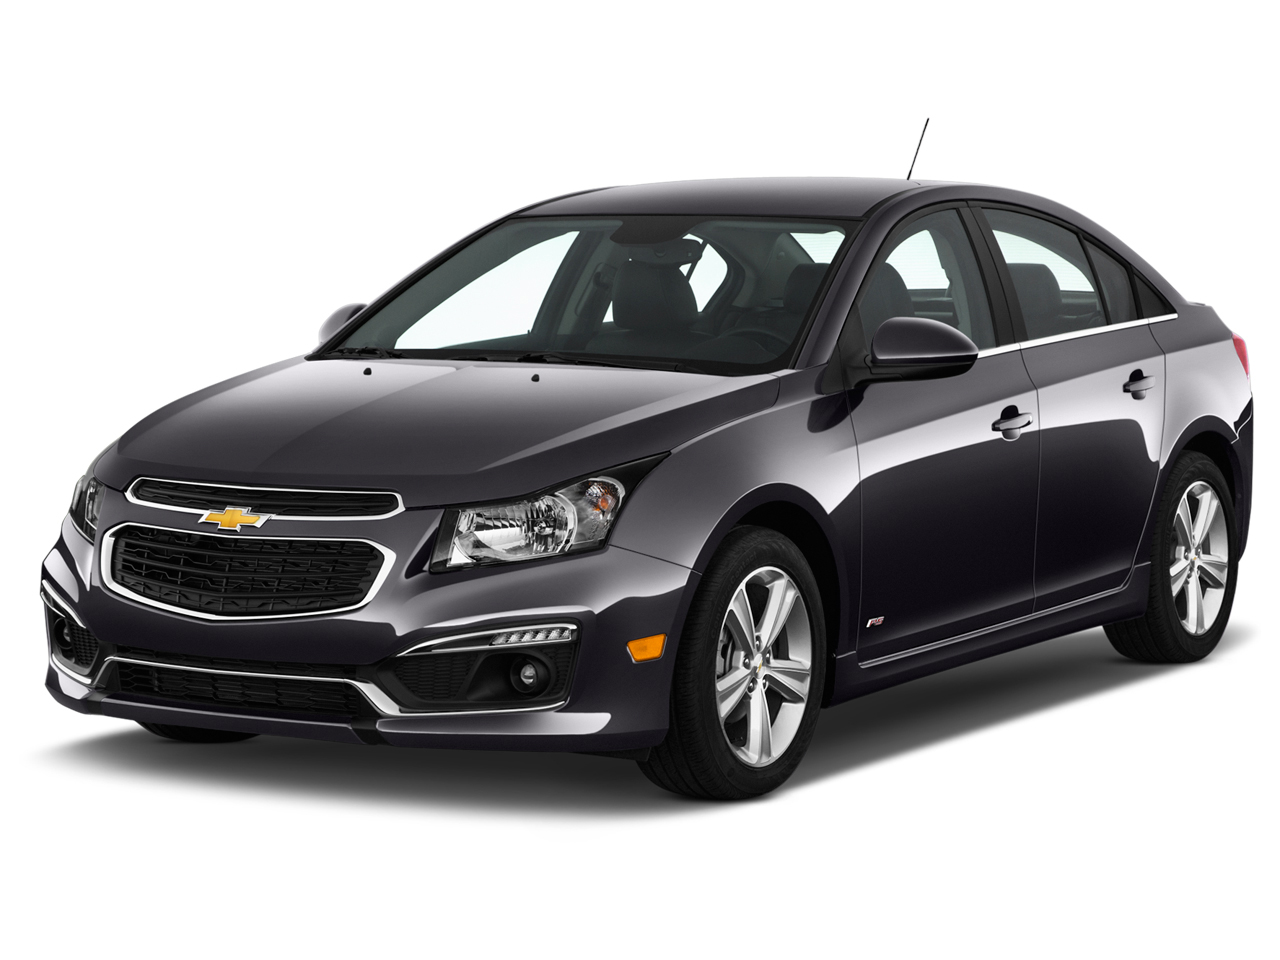 new and used chevrolet cruze limited chevy prices photos reviews specs the car connection. Black Bedroom Furniture Sets. Home Design Ideas